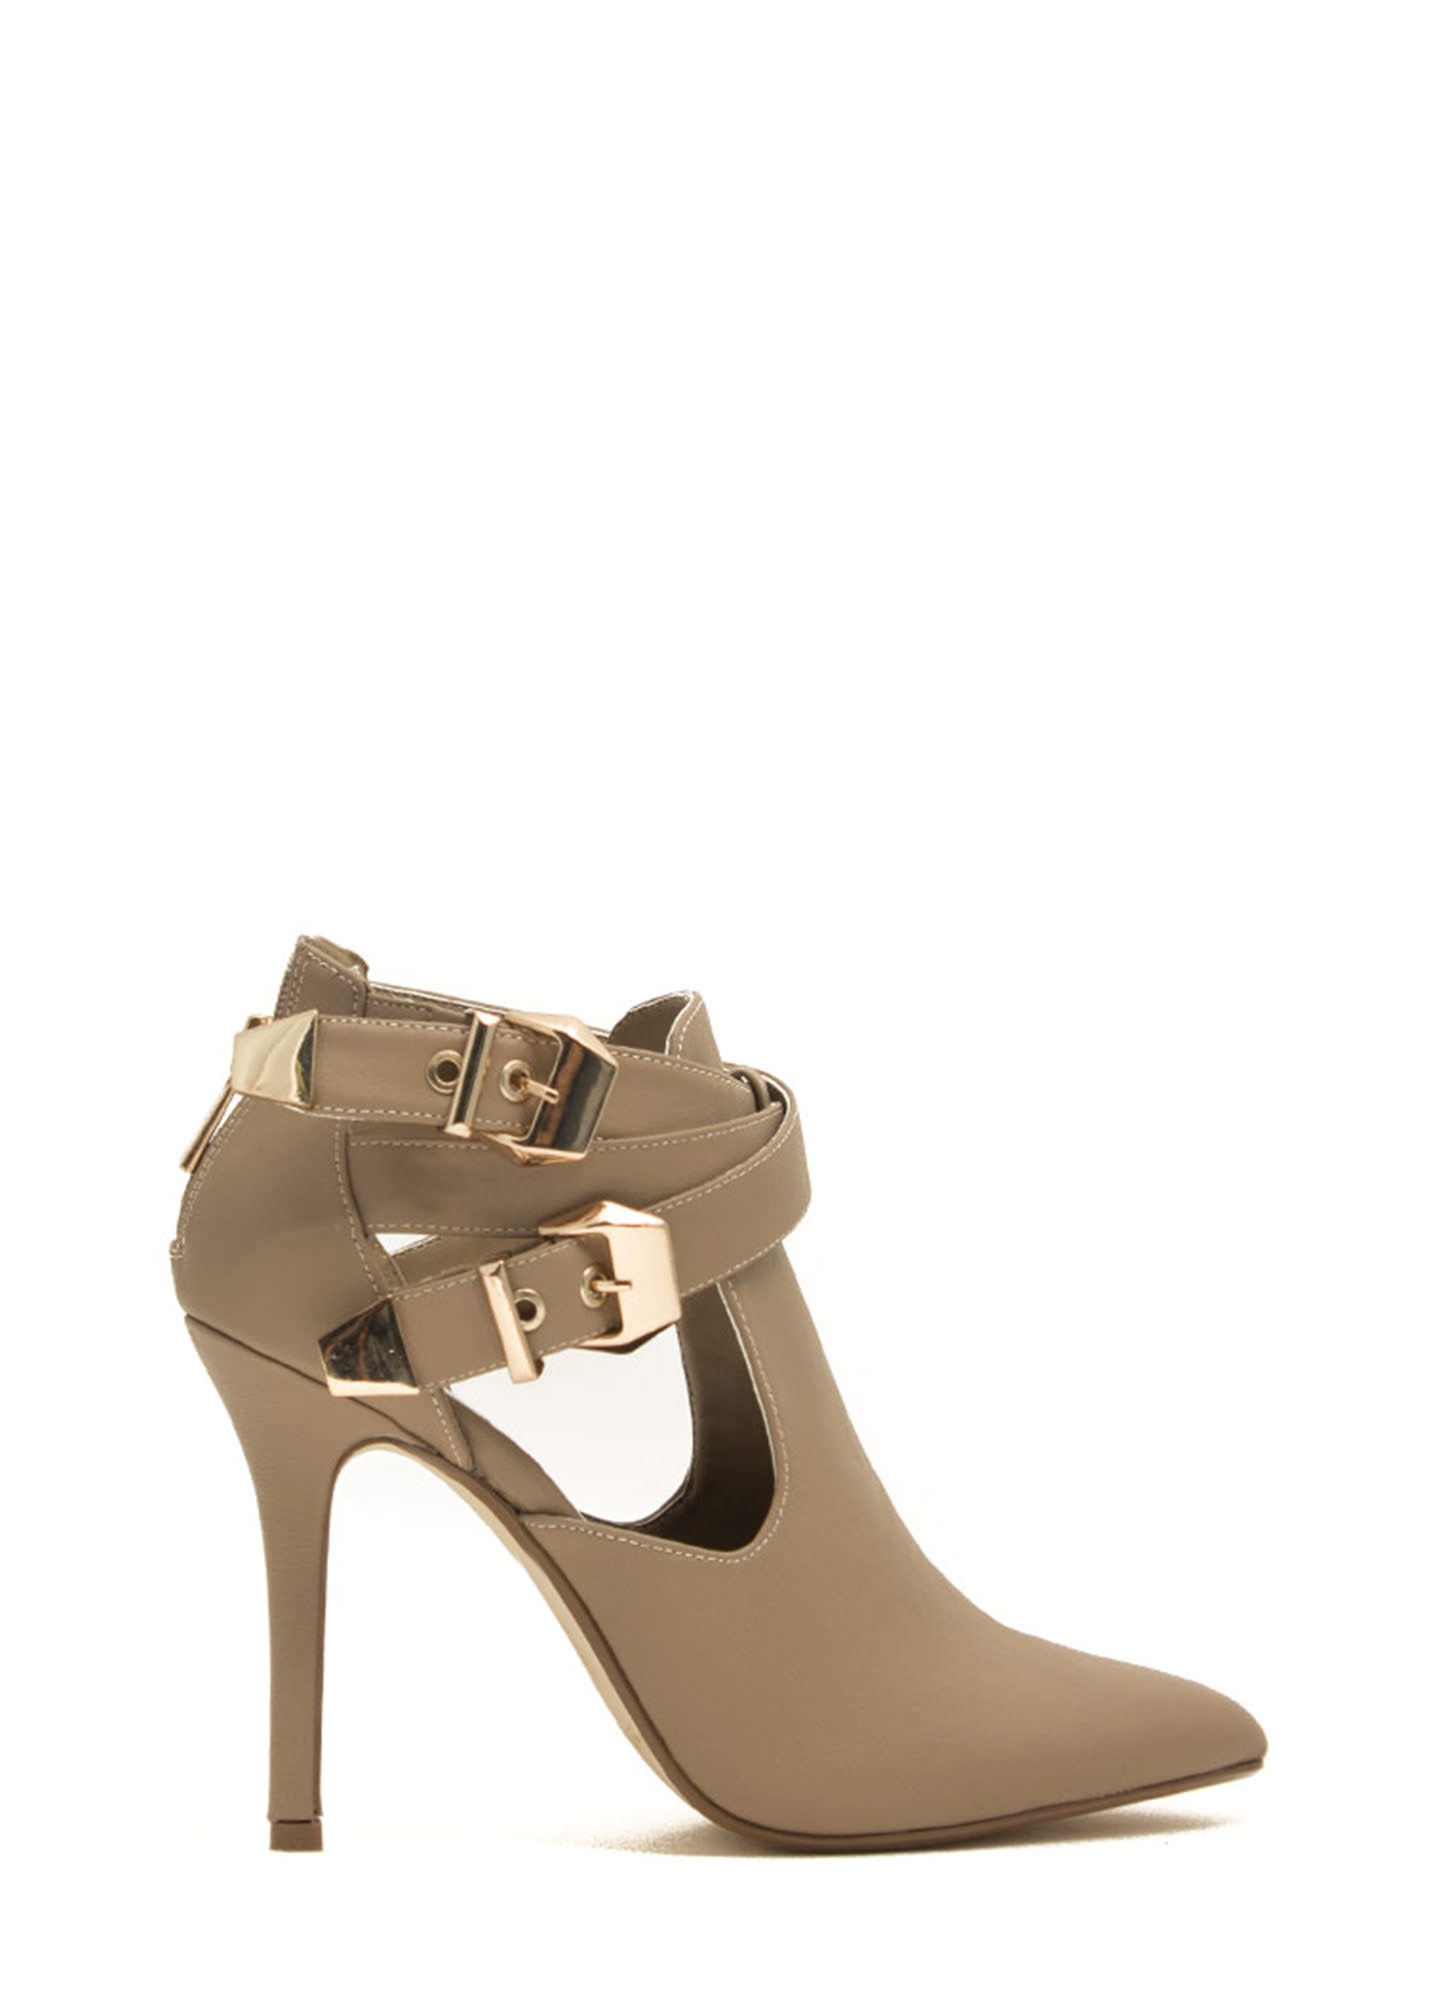 Edgy Girl Faux Leather Stiletto Booties NUDE